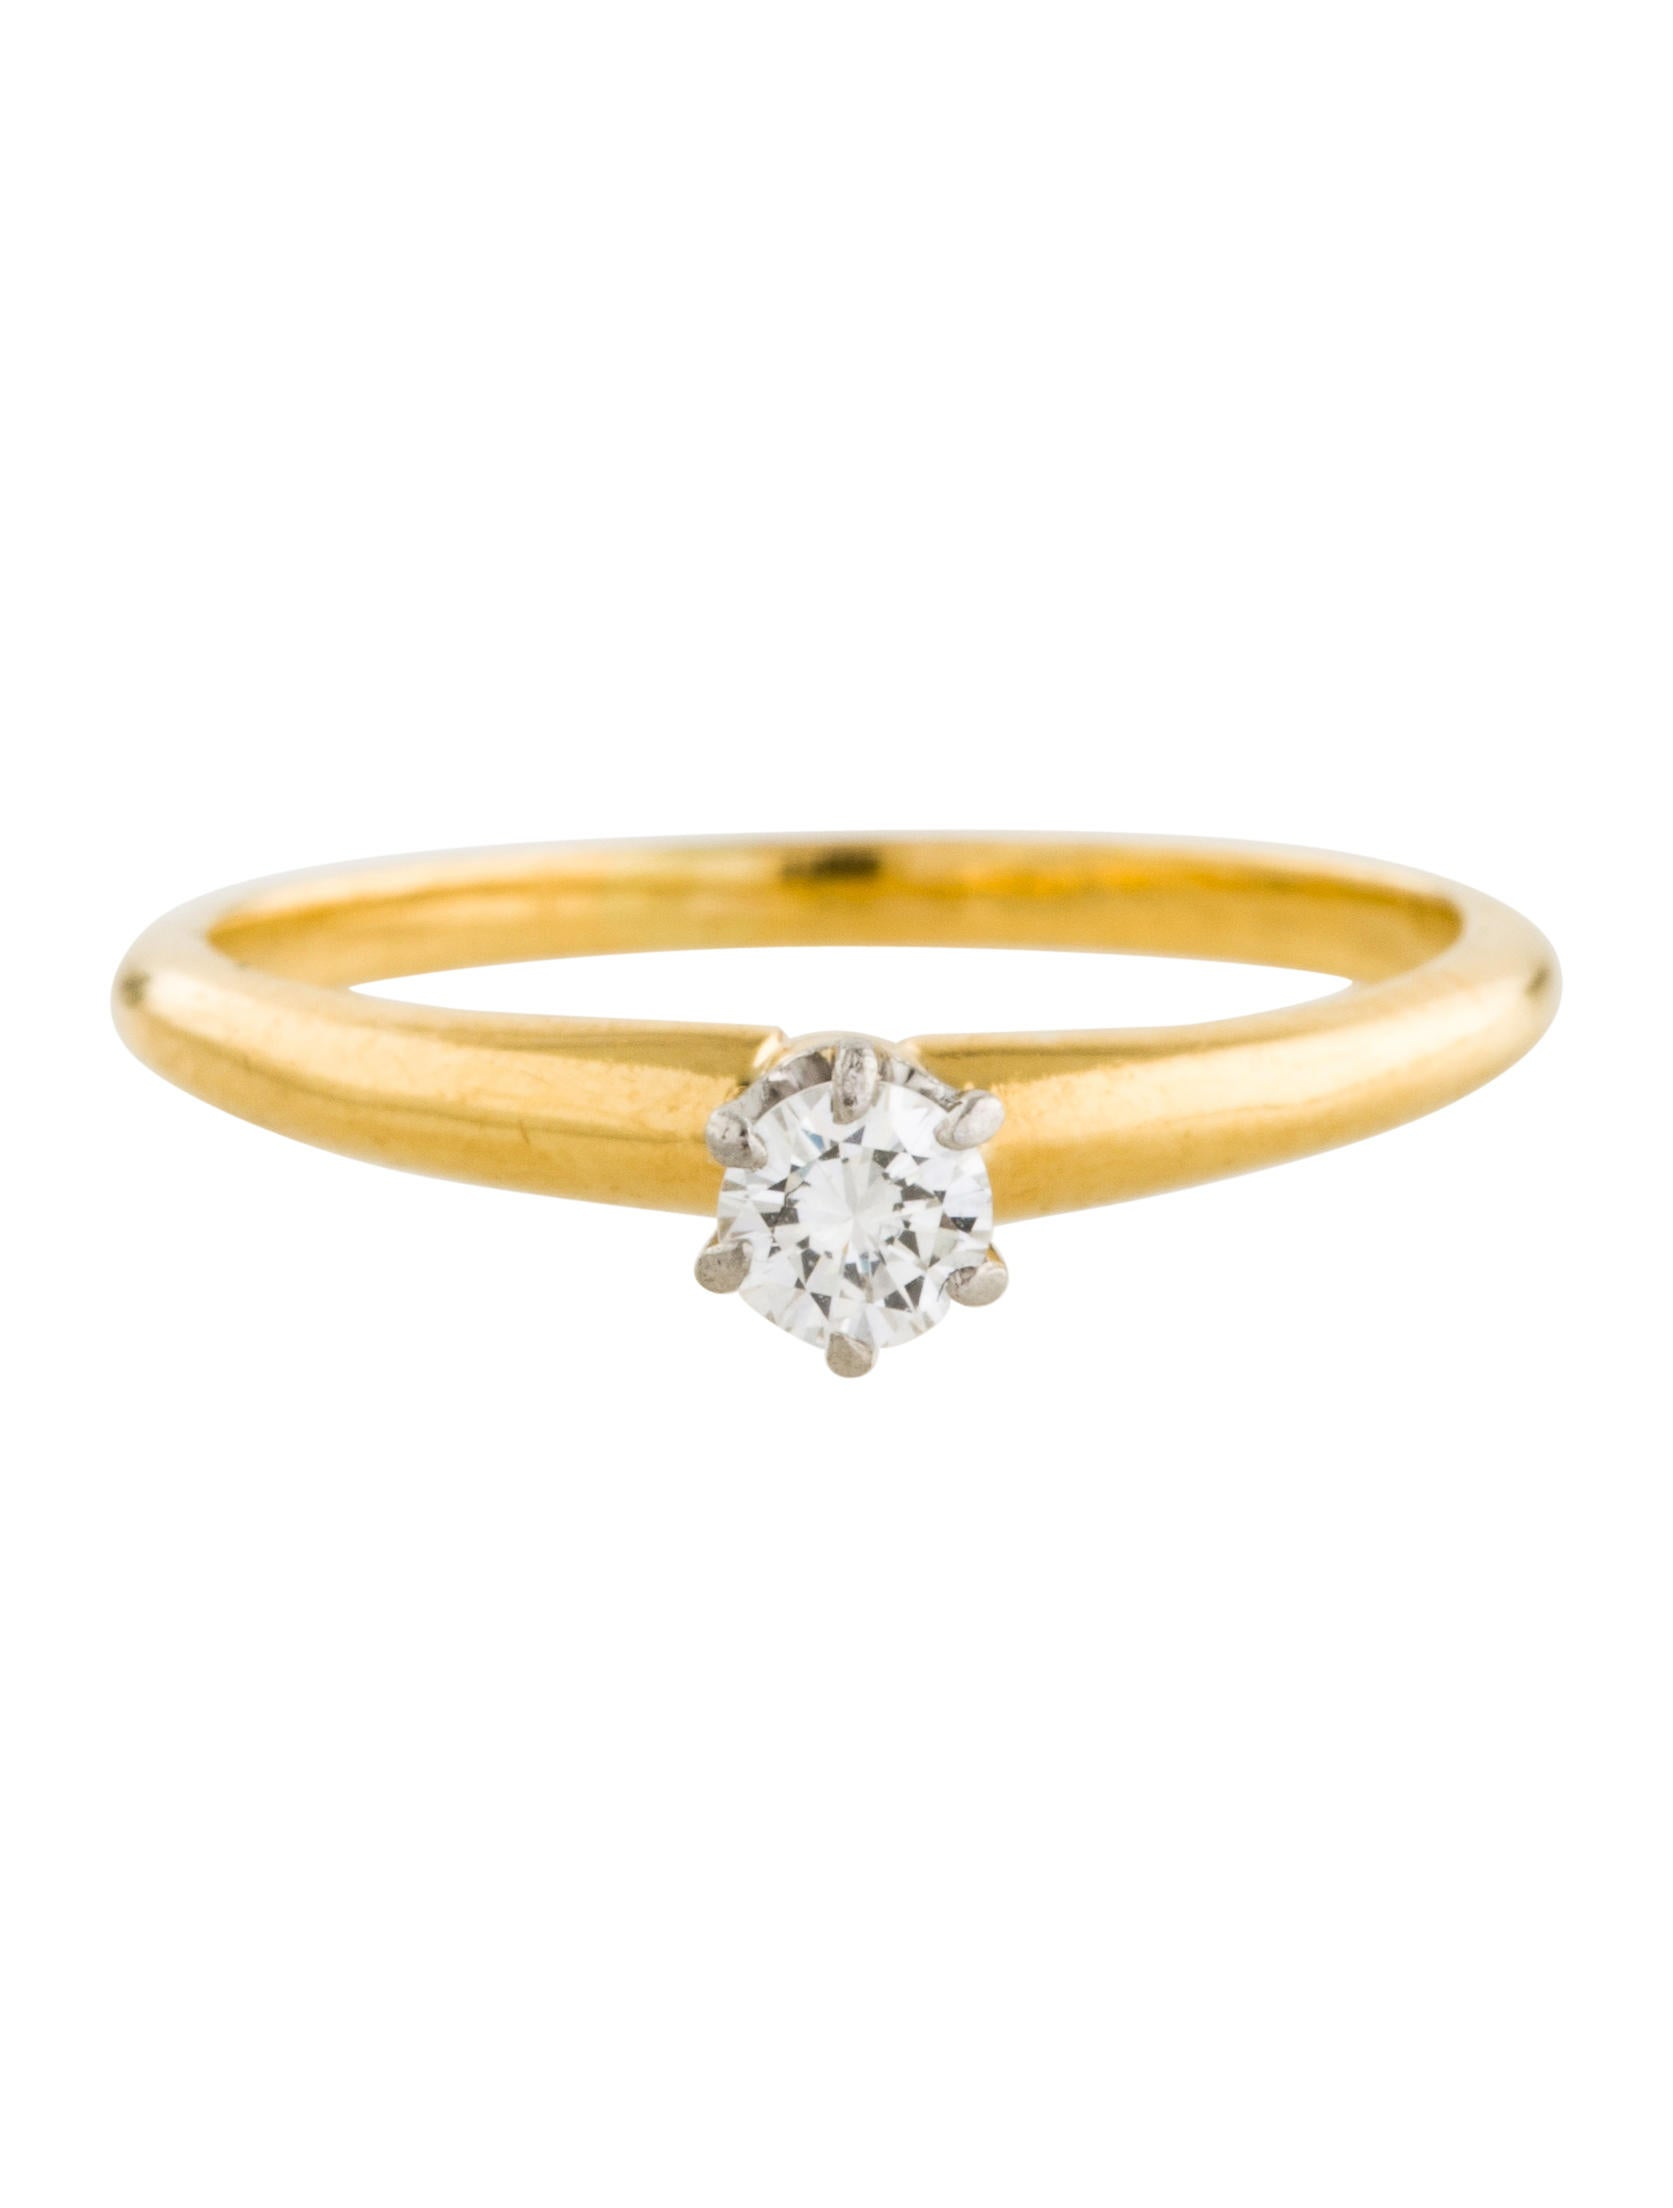 tiffany co 18k tiffany engagement ring rings tif59142 the realreal. Black Bedroom Furniture Sets. Home Design Ideas